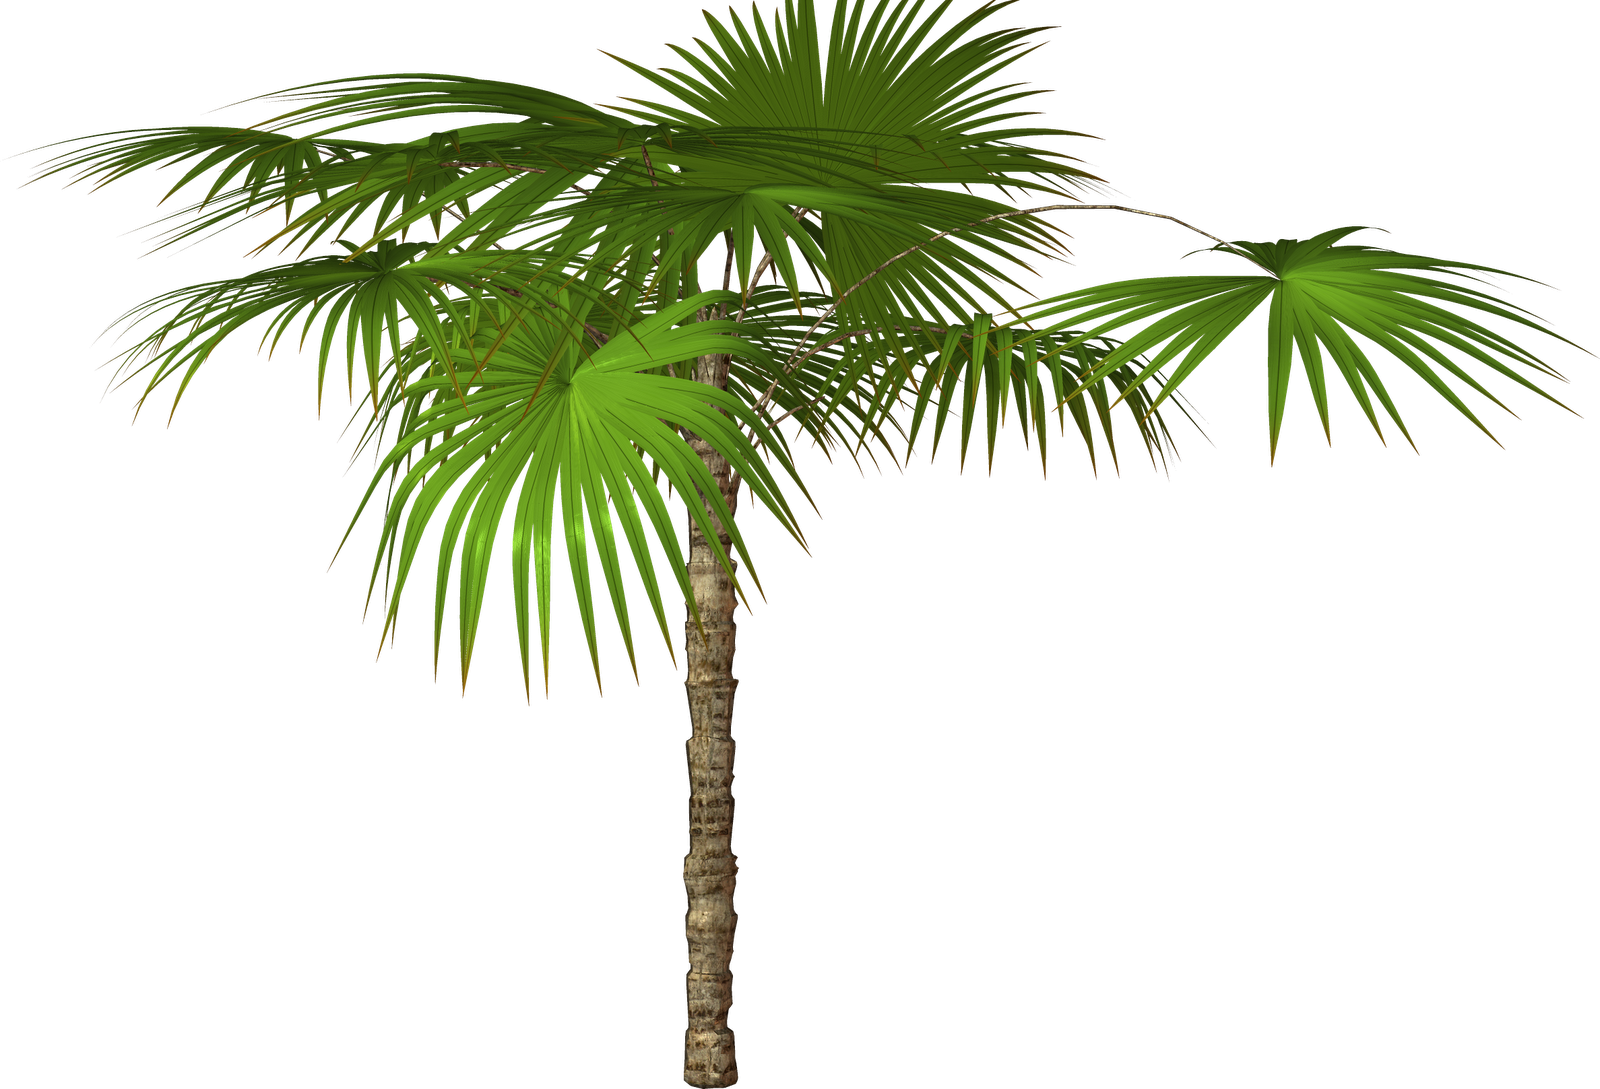 Palm flower clipart #4